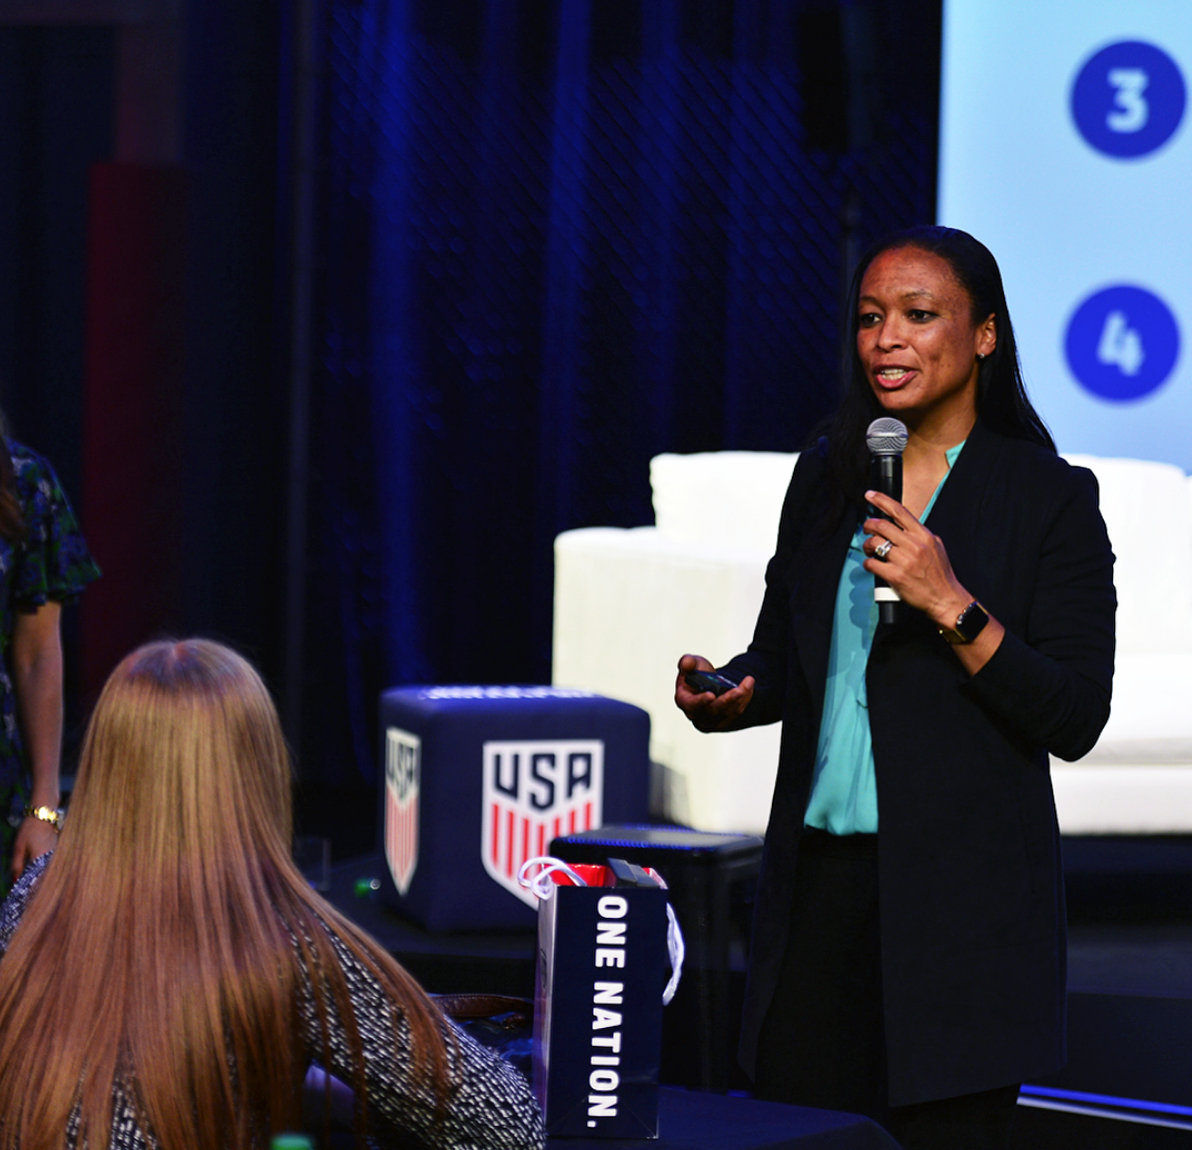 Former USWNT player Angela Hucles speaking at the SheBelieves Summit on March 3.